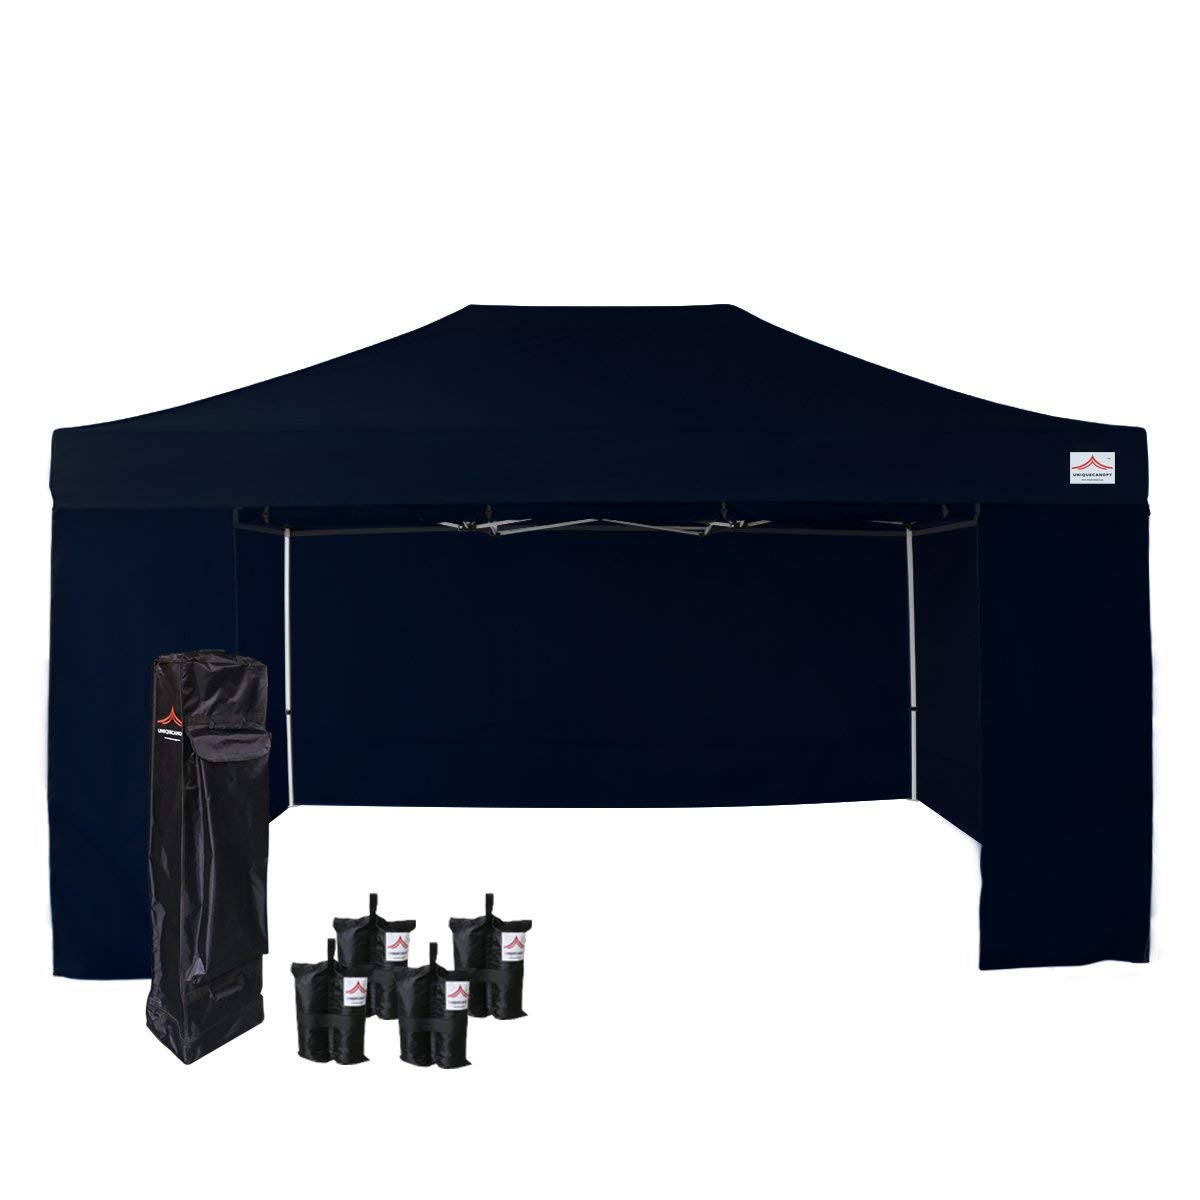 UNIQUECANOPY 500D Enhanced 10x15 Ez Pop up Canopy Portable Folded Commercial Canopy Car Shelter Wedding Party Show Tent with 4 Zippered Side Walls and Wheeled Carrying Bag Navy Blue